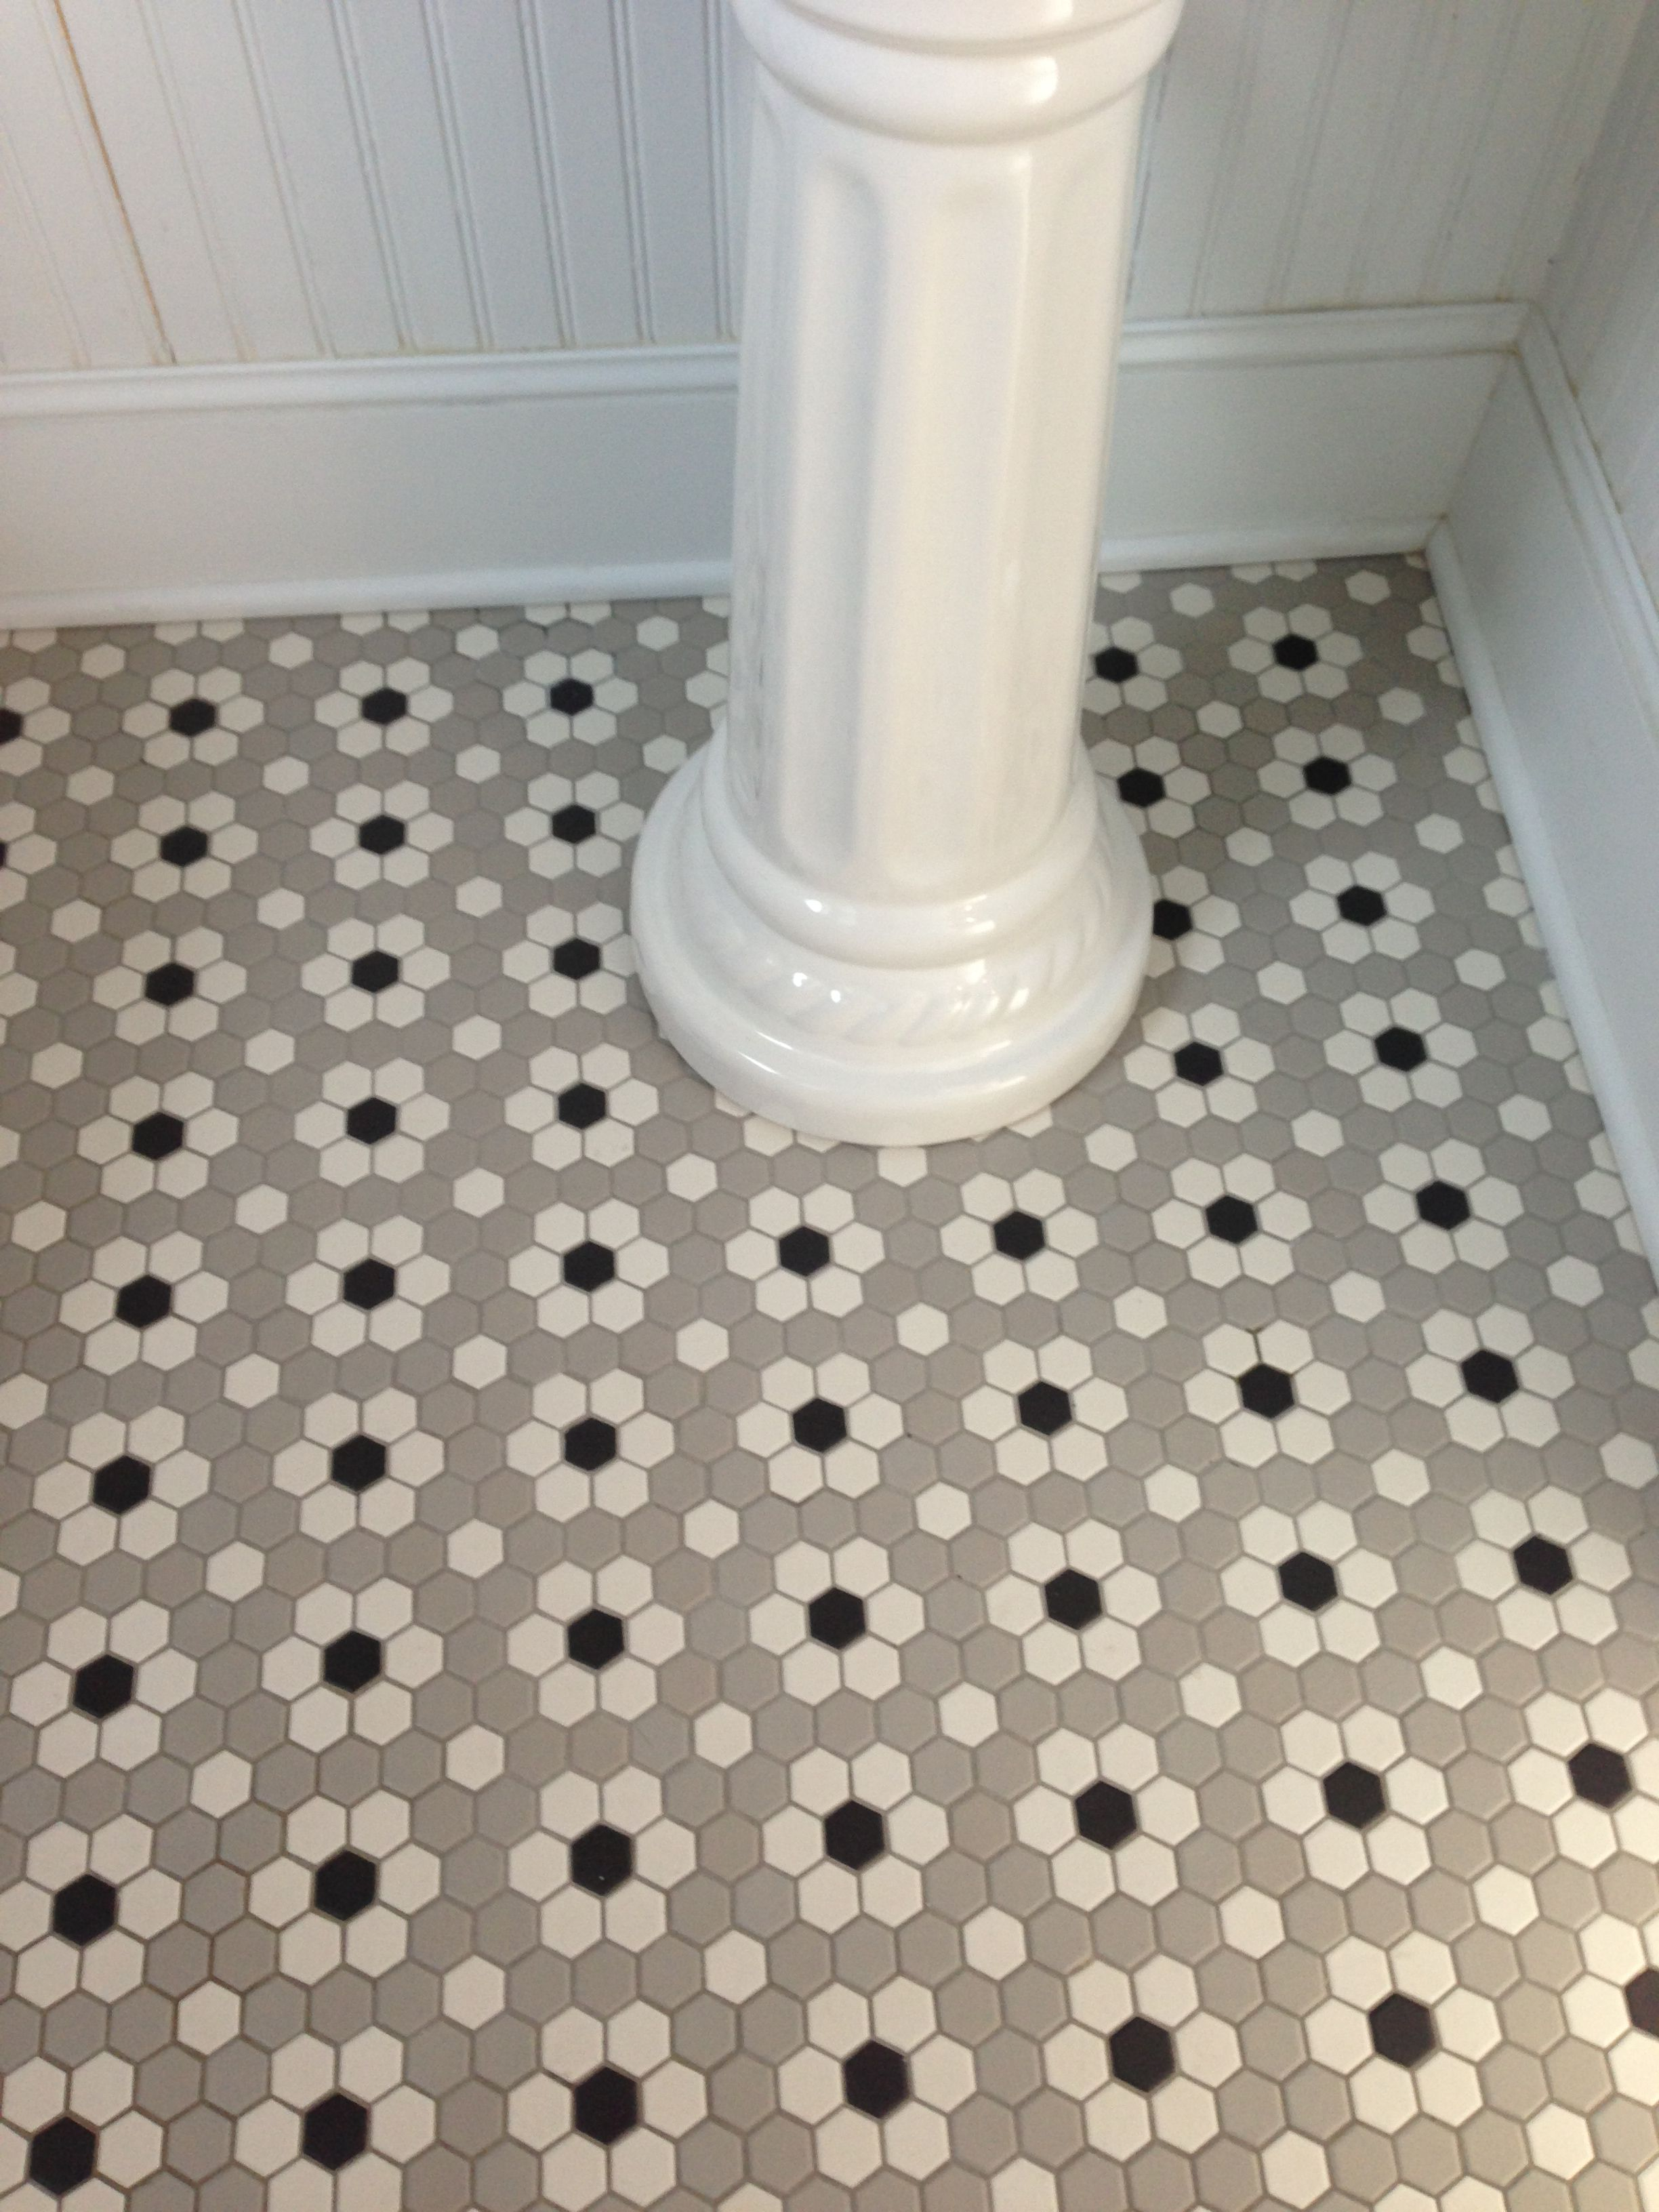 Ceramic Mosaic Hex Tile Photo Of We Installed In Our Main Floor Half Bath